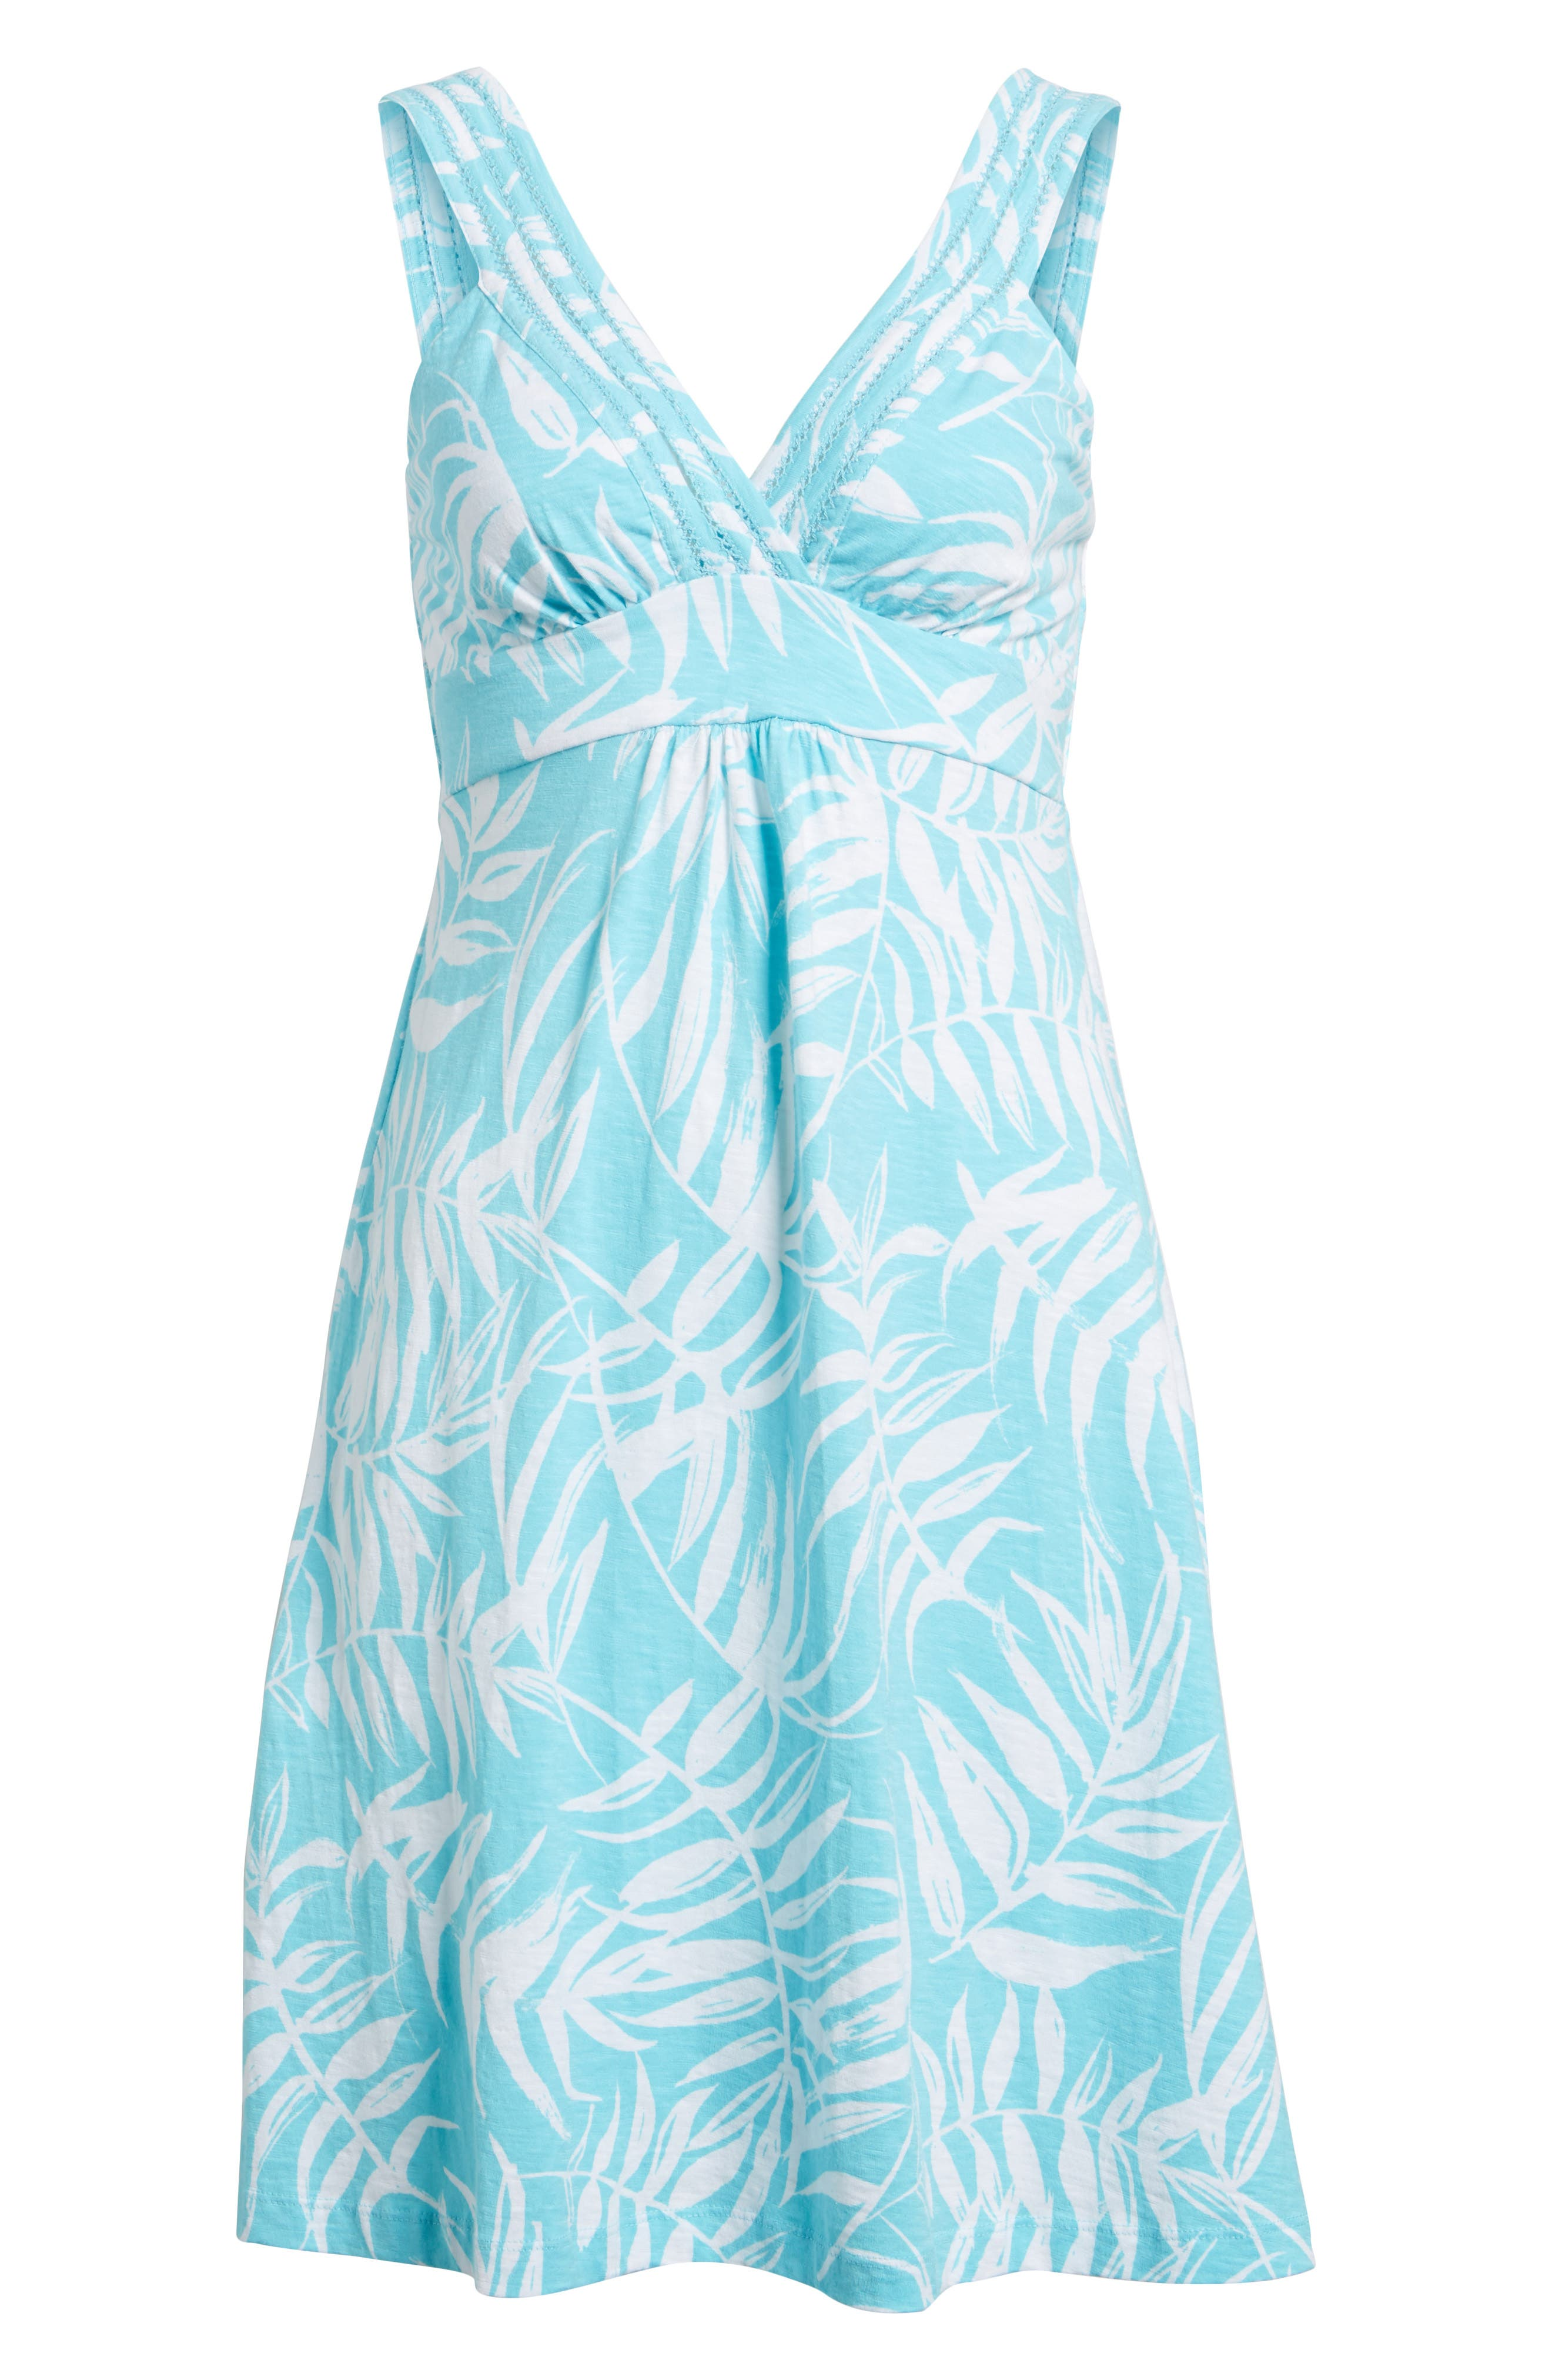 Fronds with Benefits Dress,                             Alternate thumbnail 6, color,                             BLUE RADIANCE